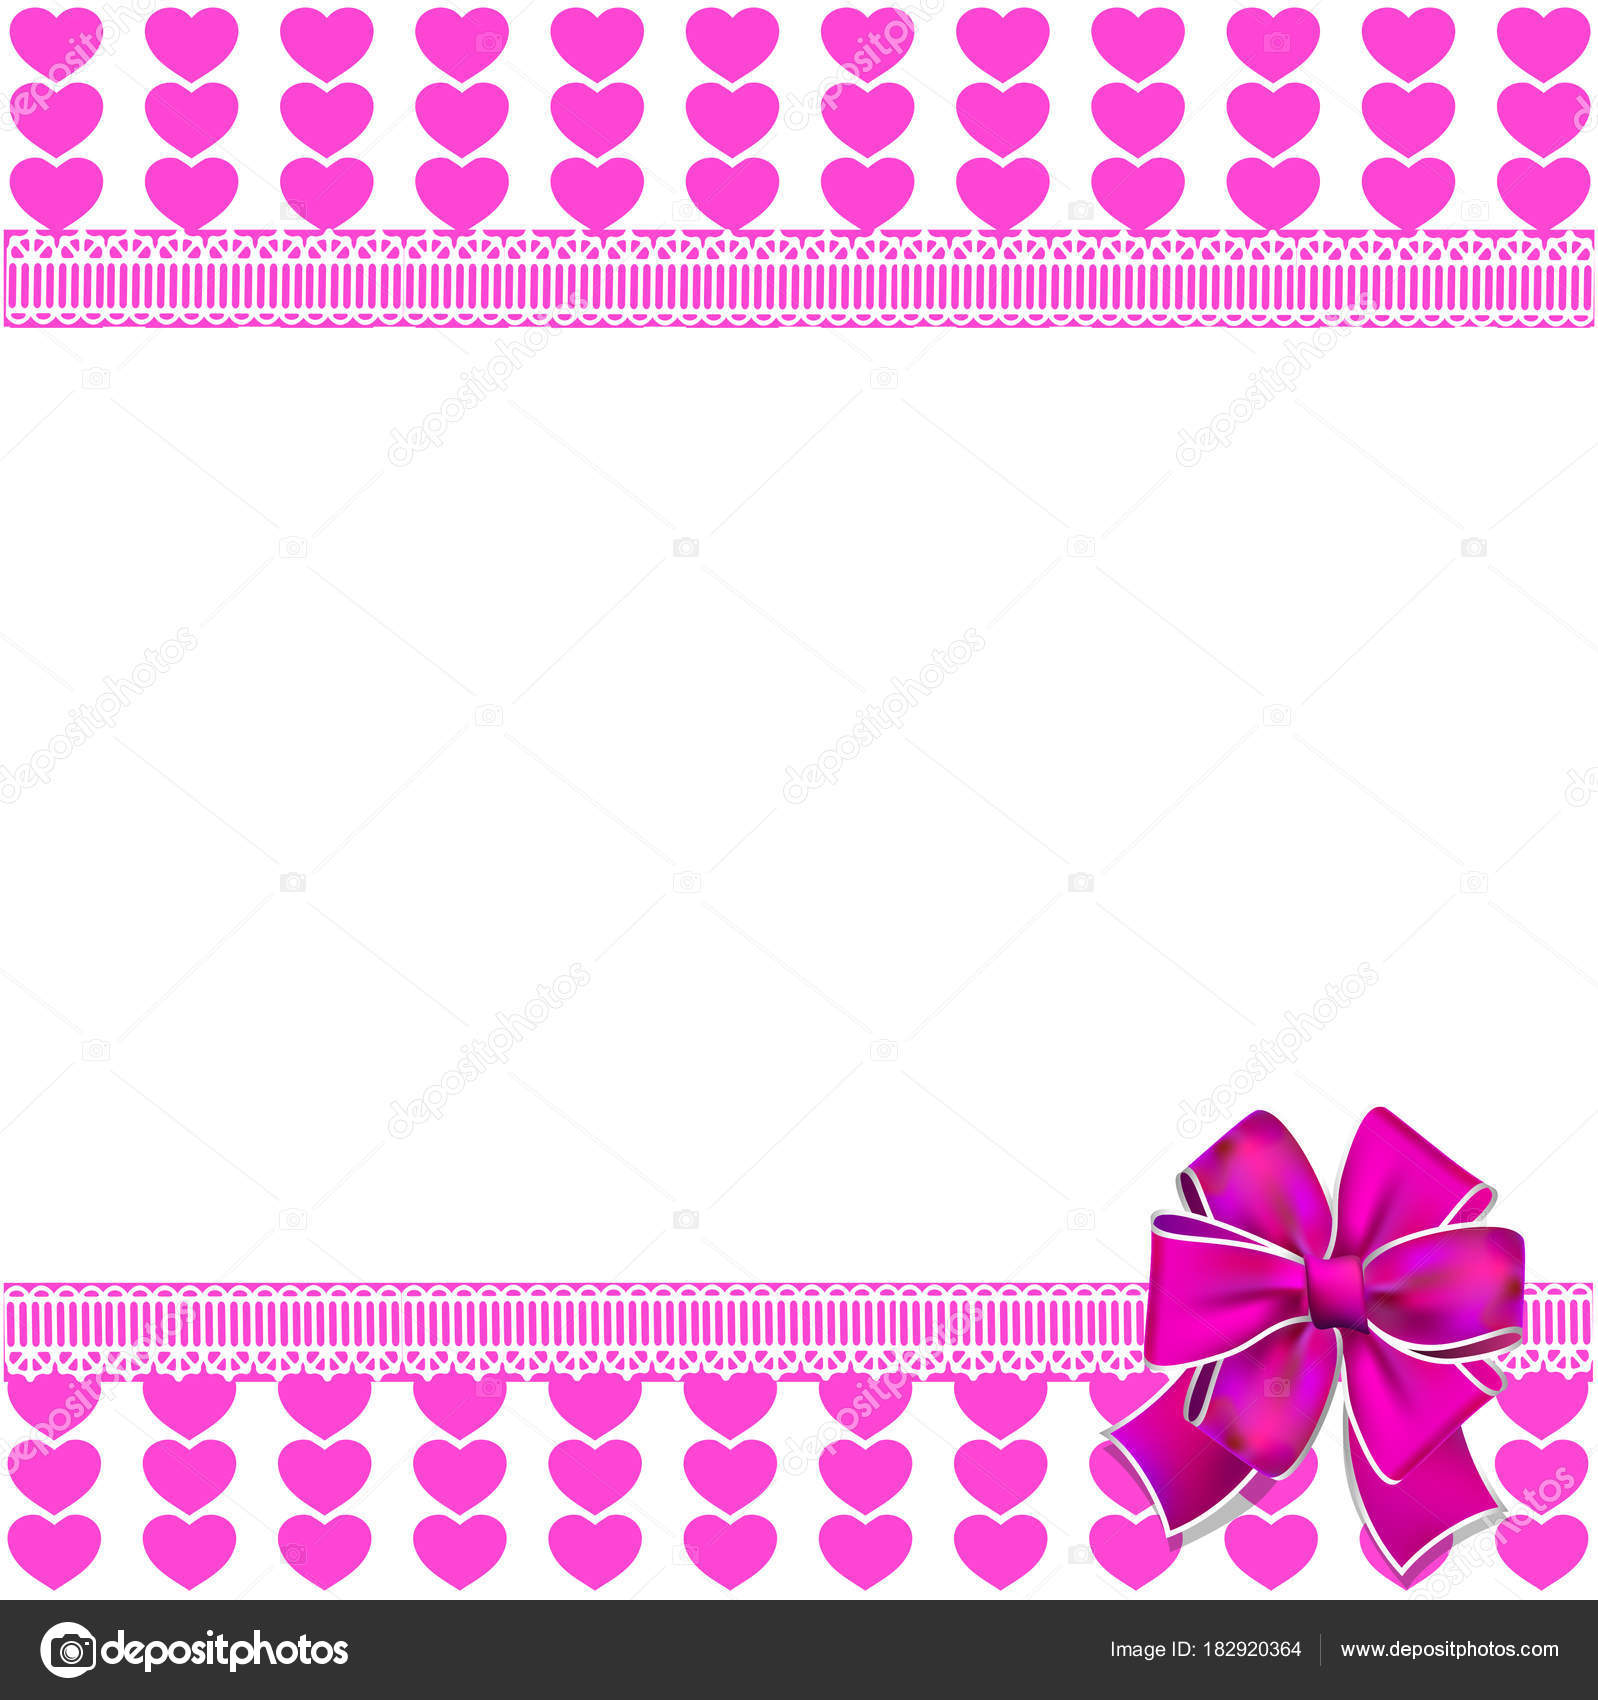 cute elegant template with pink lined hearts pattern space for